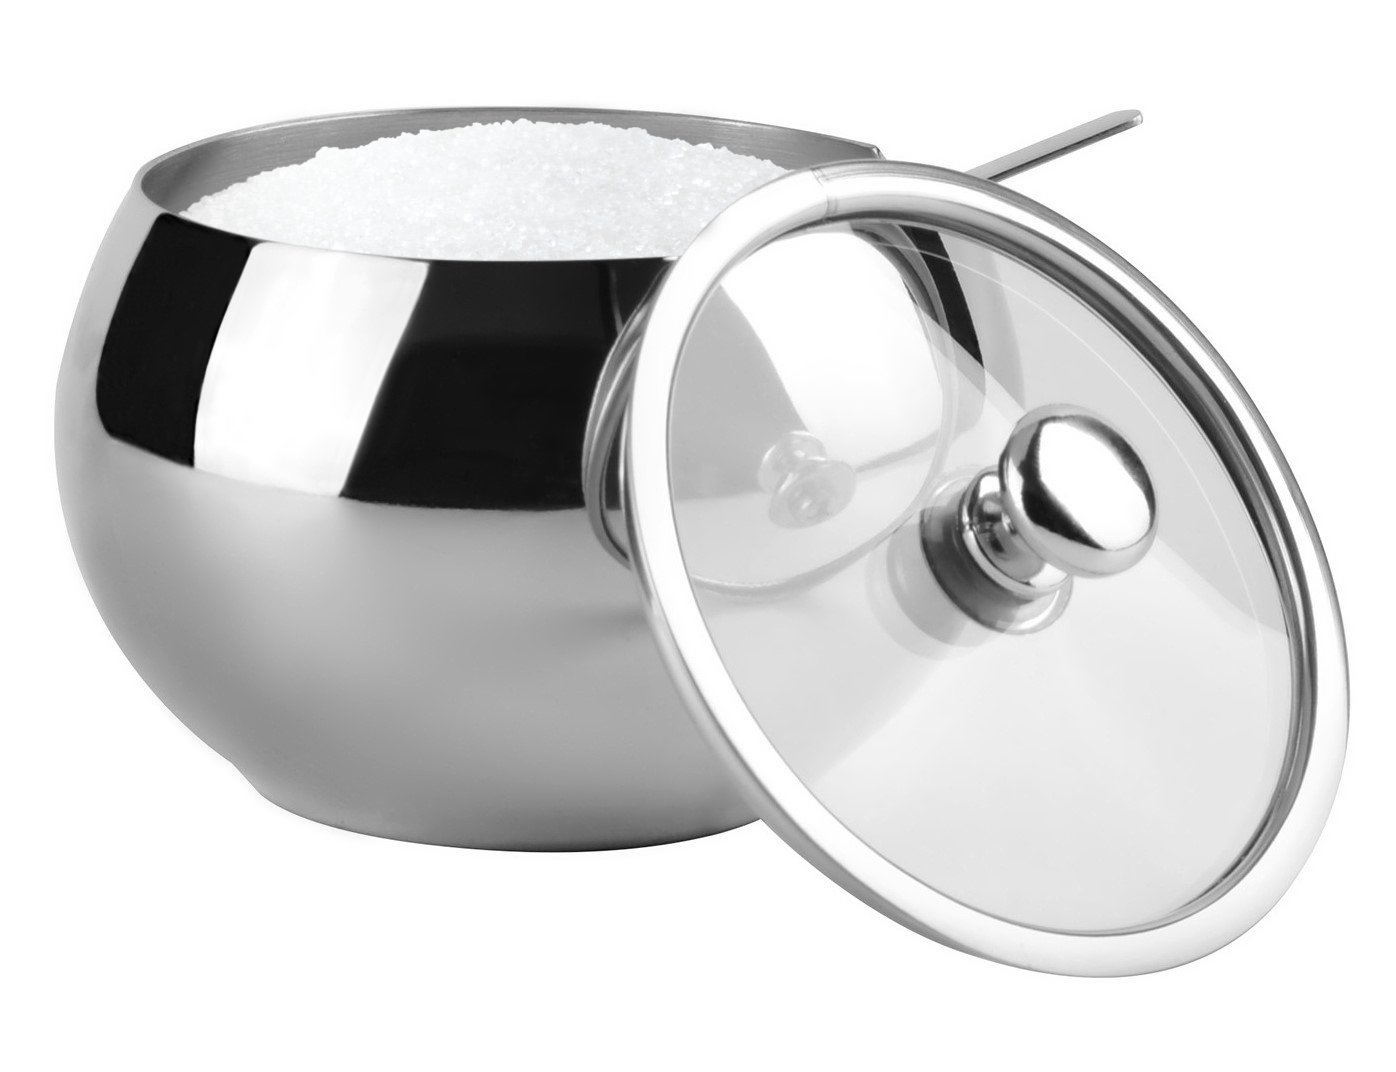 KooK Sugar Bowl Glass With Clear Lid and Spoon 0.5L (16.90 Ounces) - Wide Mouth JG Hirman 7060